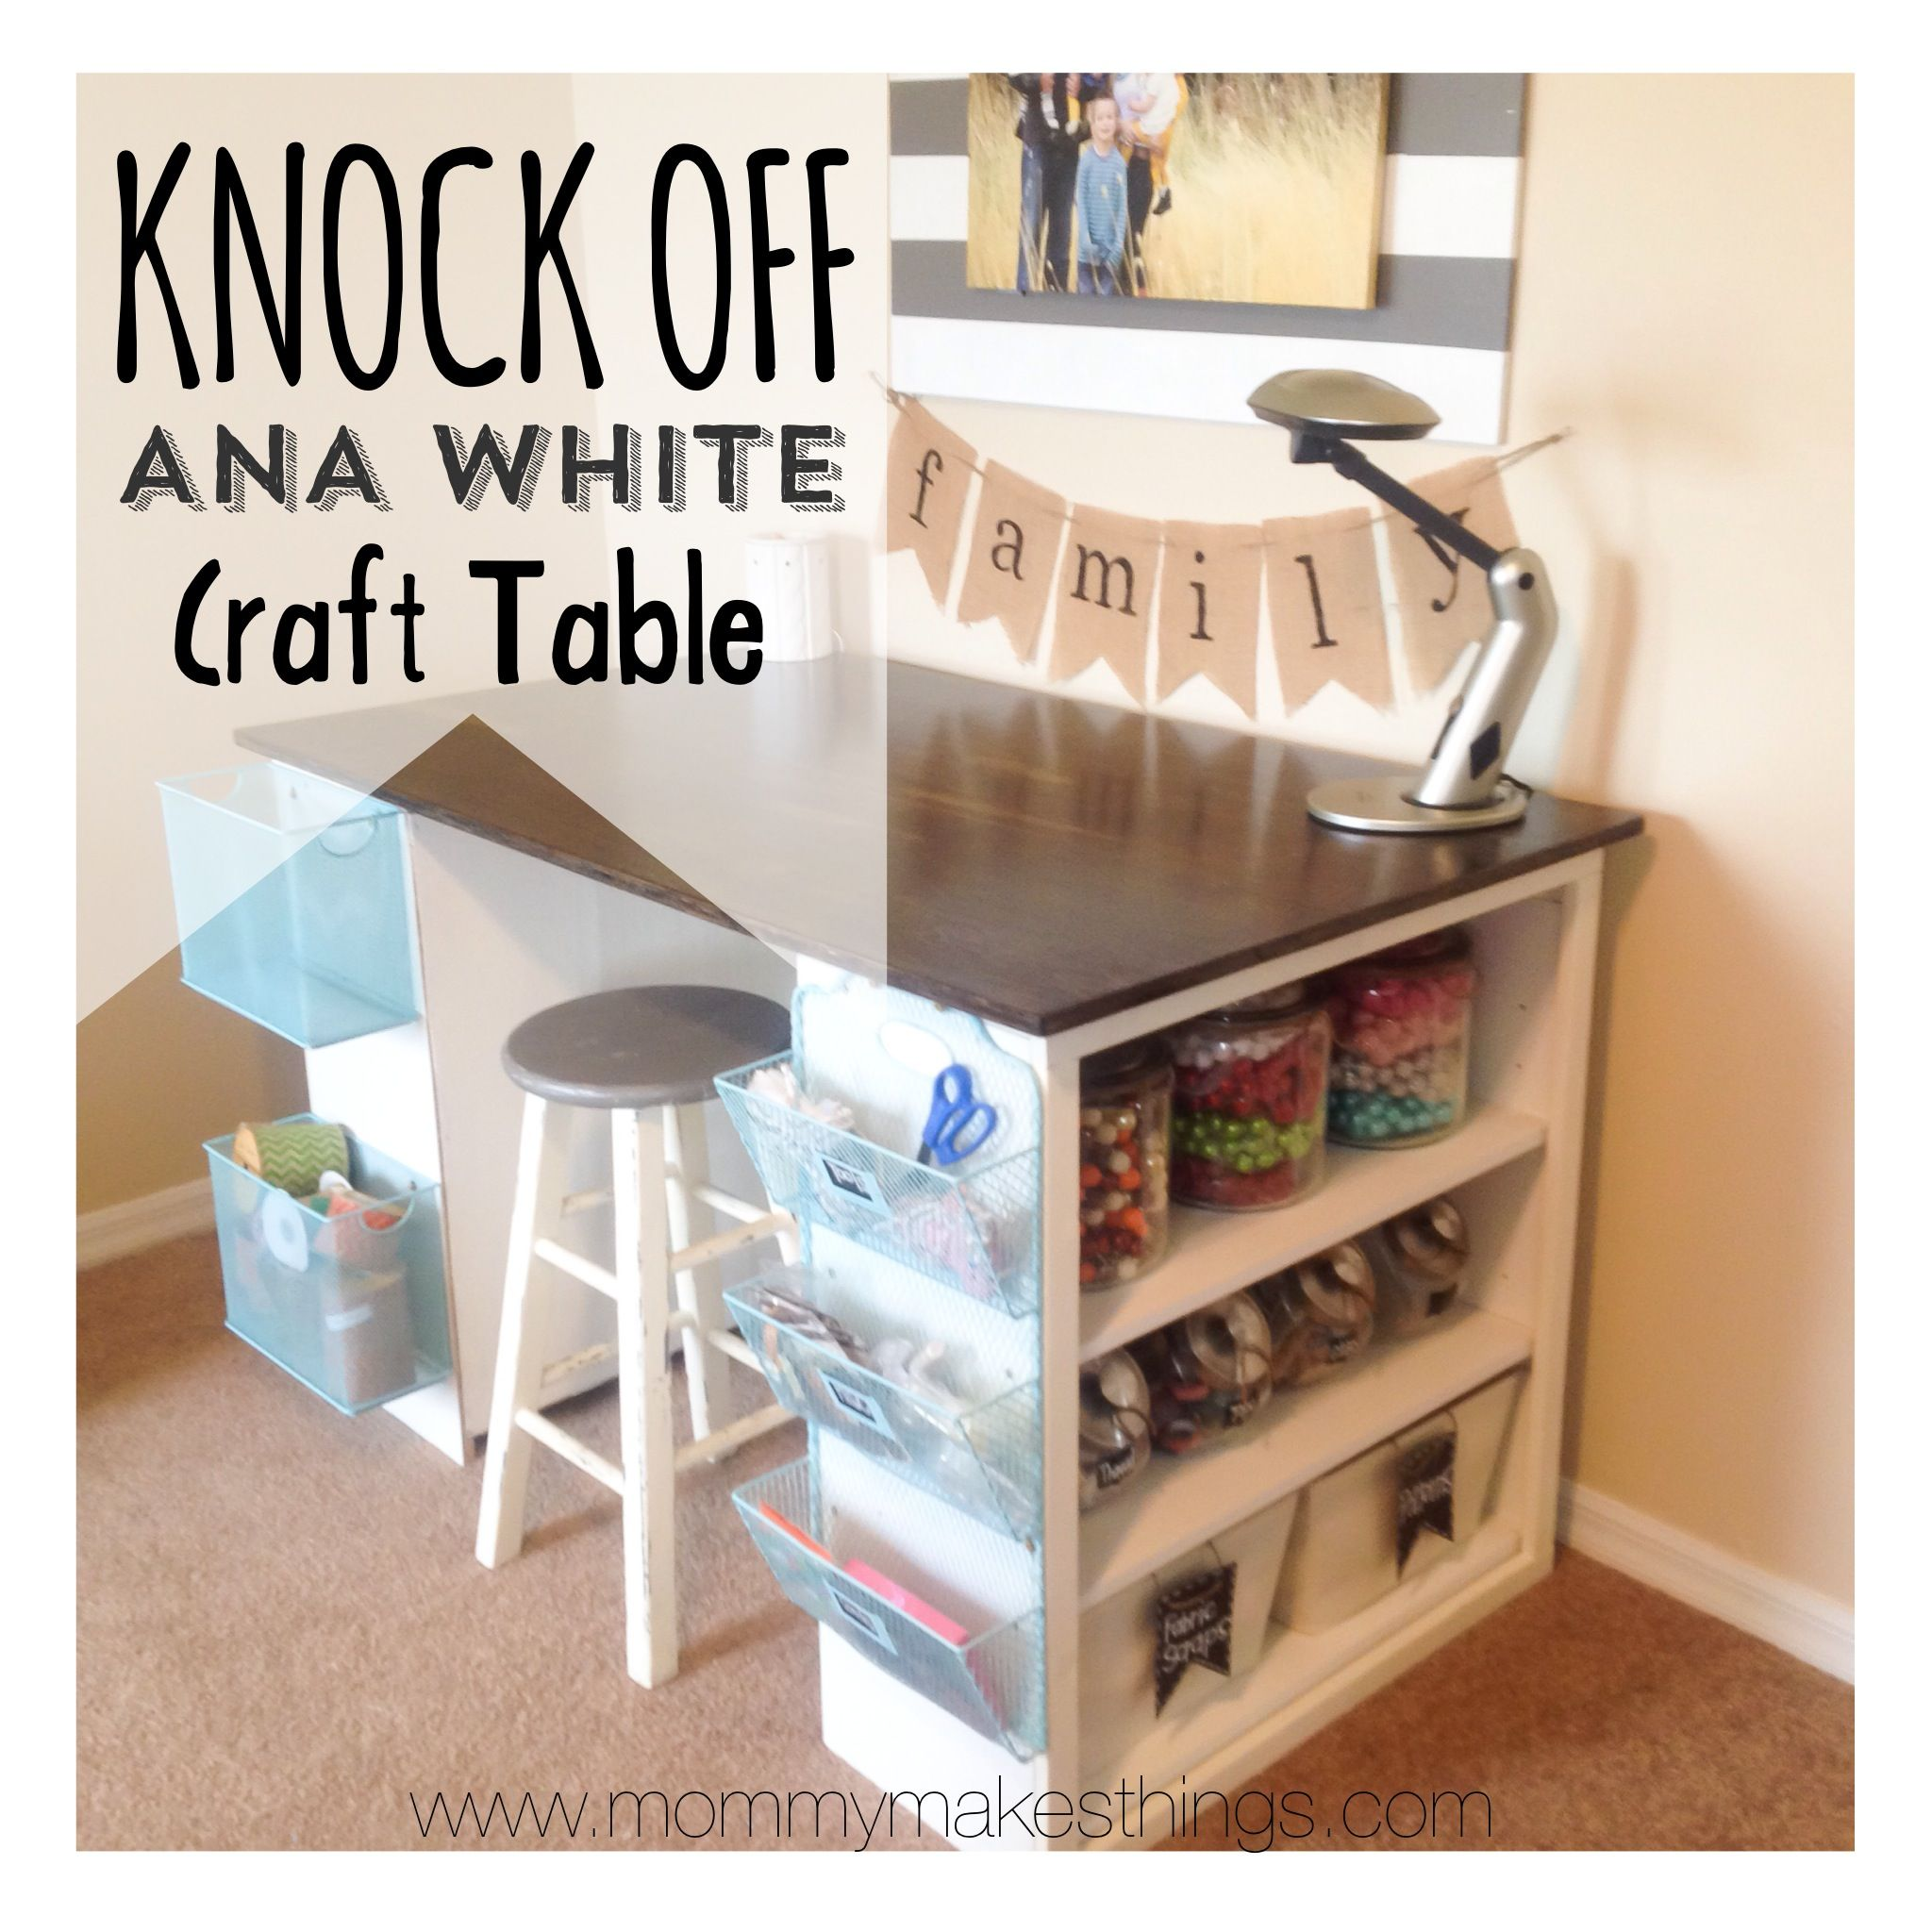 Ana white craft table knock off craft table diy craft